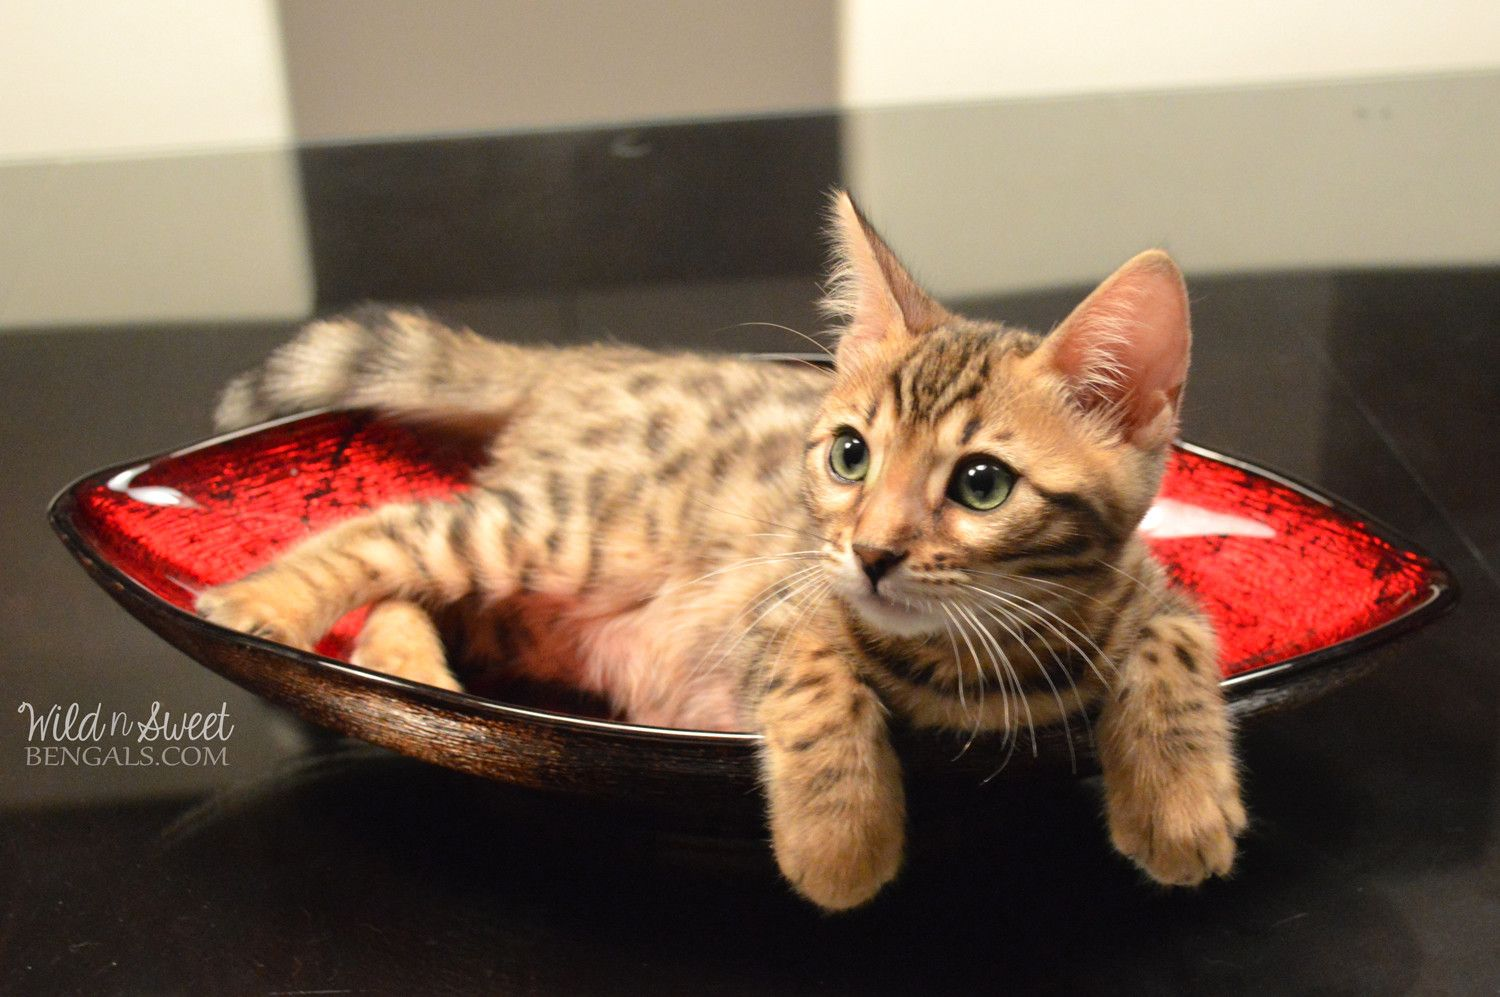 Bengal Kittens & Cats for Sale Near Me Bengal kitten